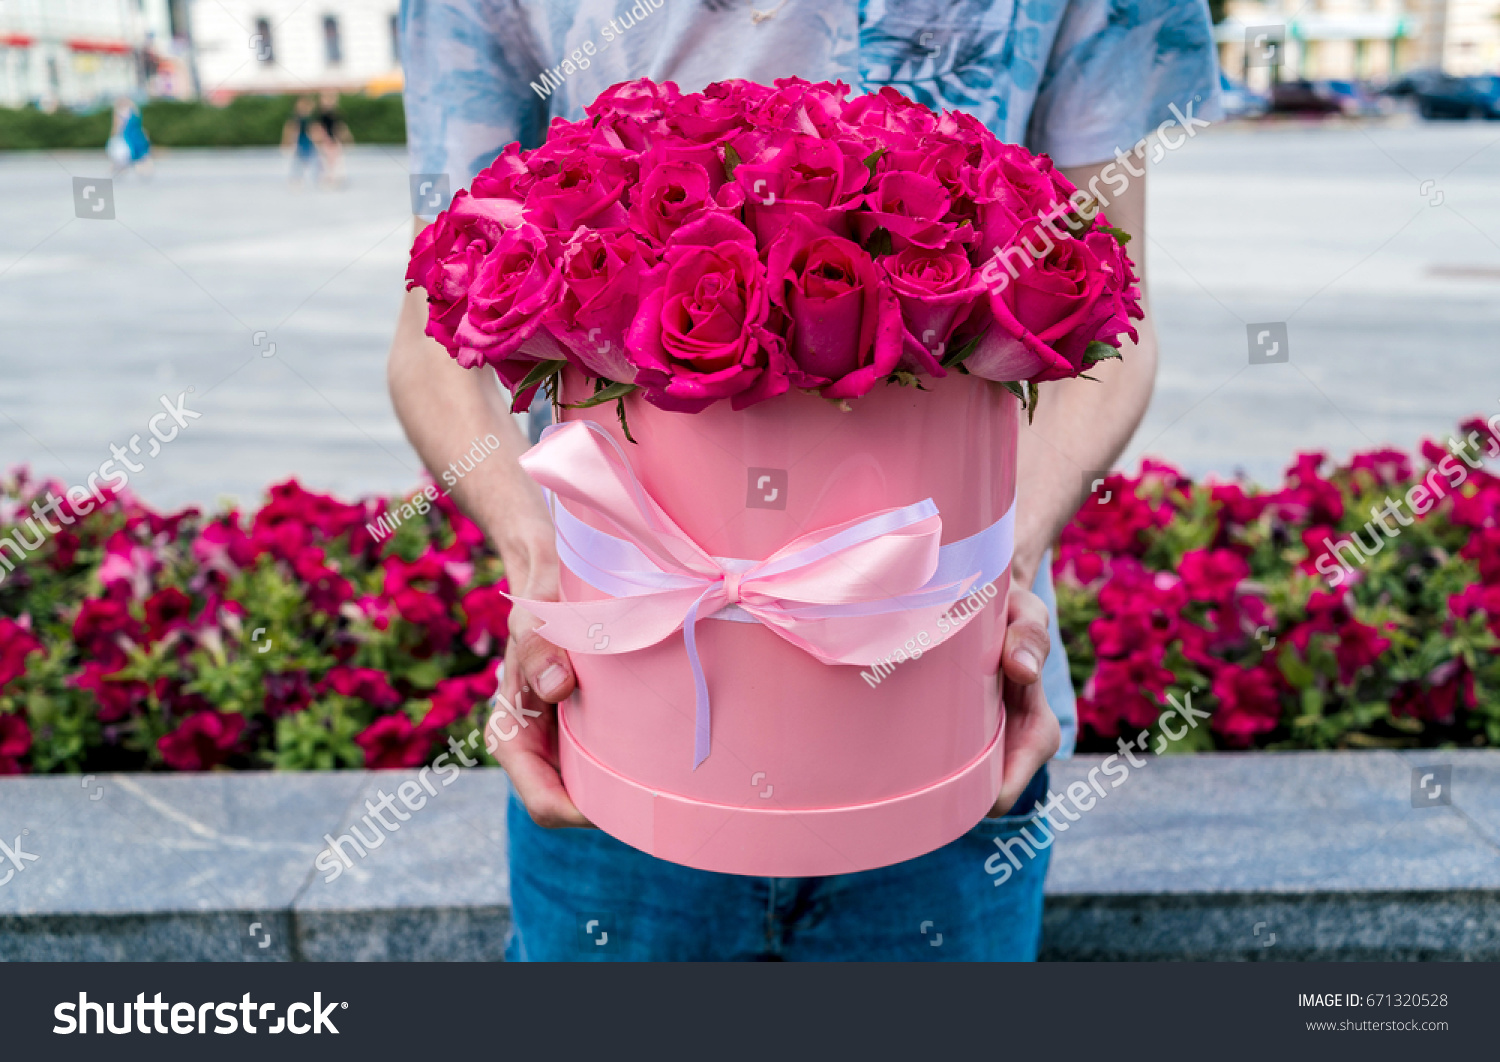 Beautiful flower bouquet pink roses big stock photo edit now beautiful flower bouquet of pink roses in big round pink hat box with ribbon in man izmirmasajfo